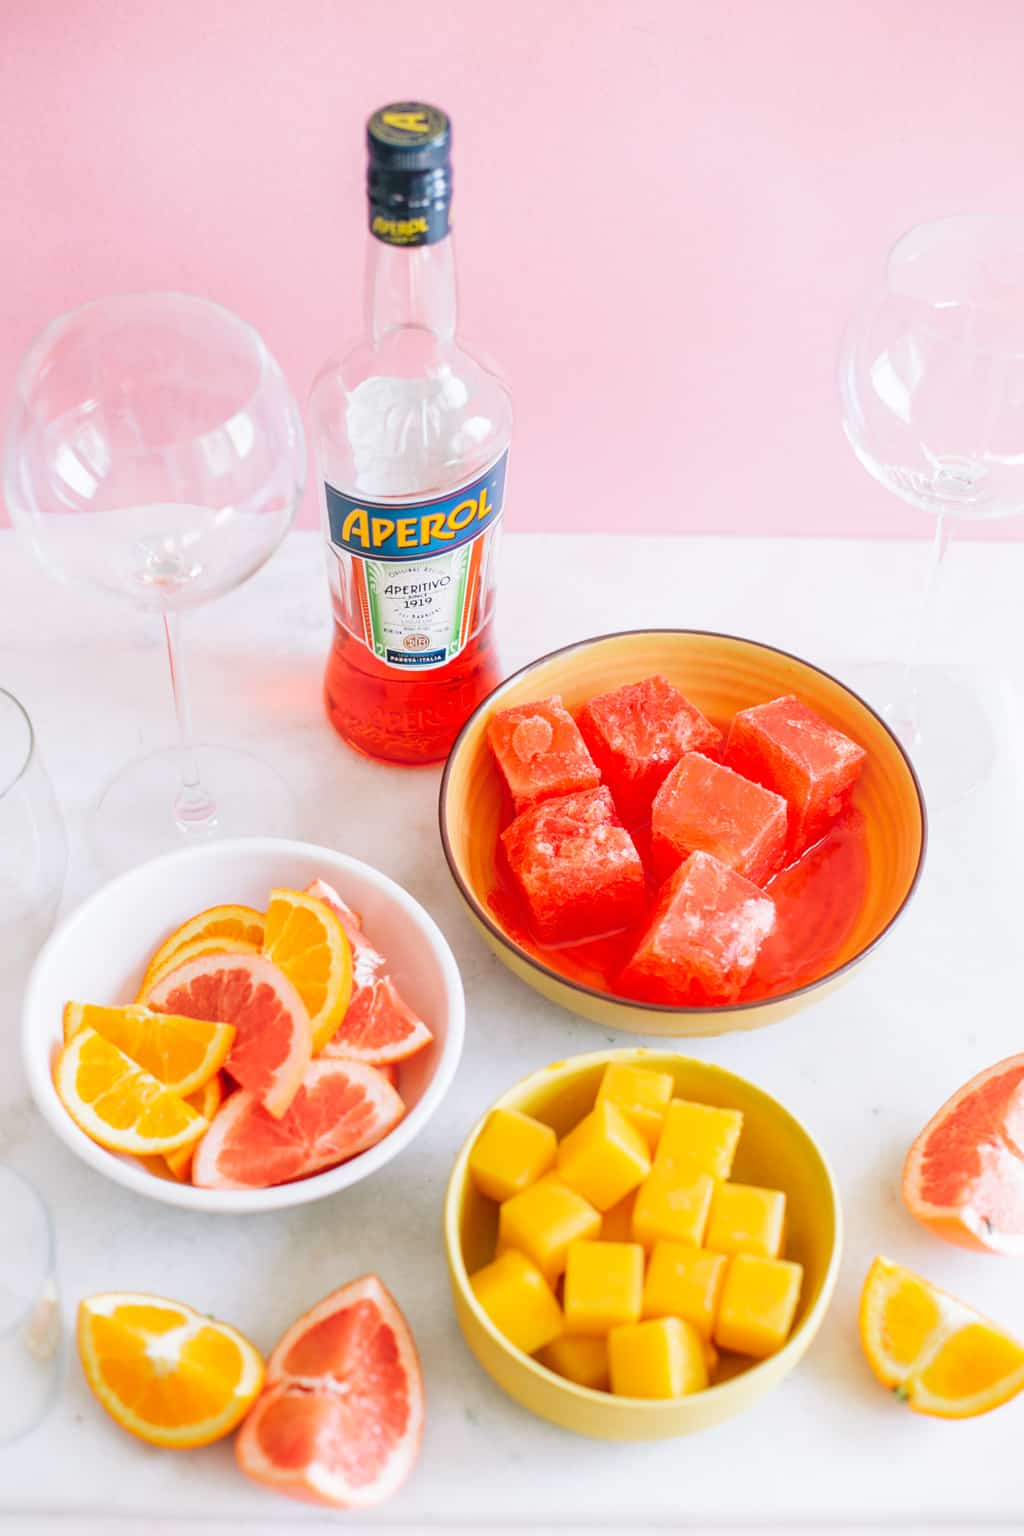 frozen orange juice and aperol ice cubes in two bowls with citrus slices and aperol bottle